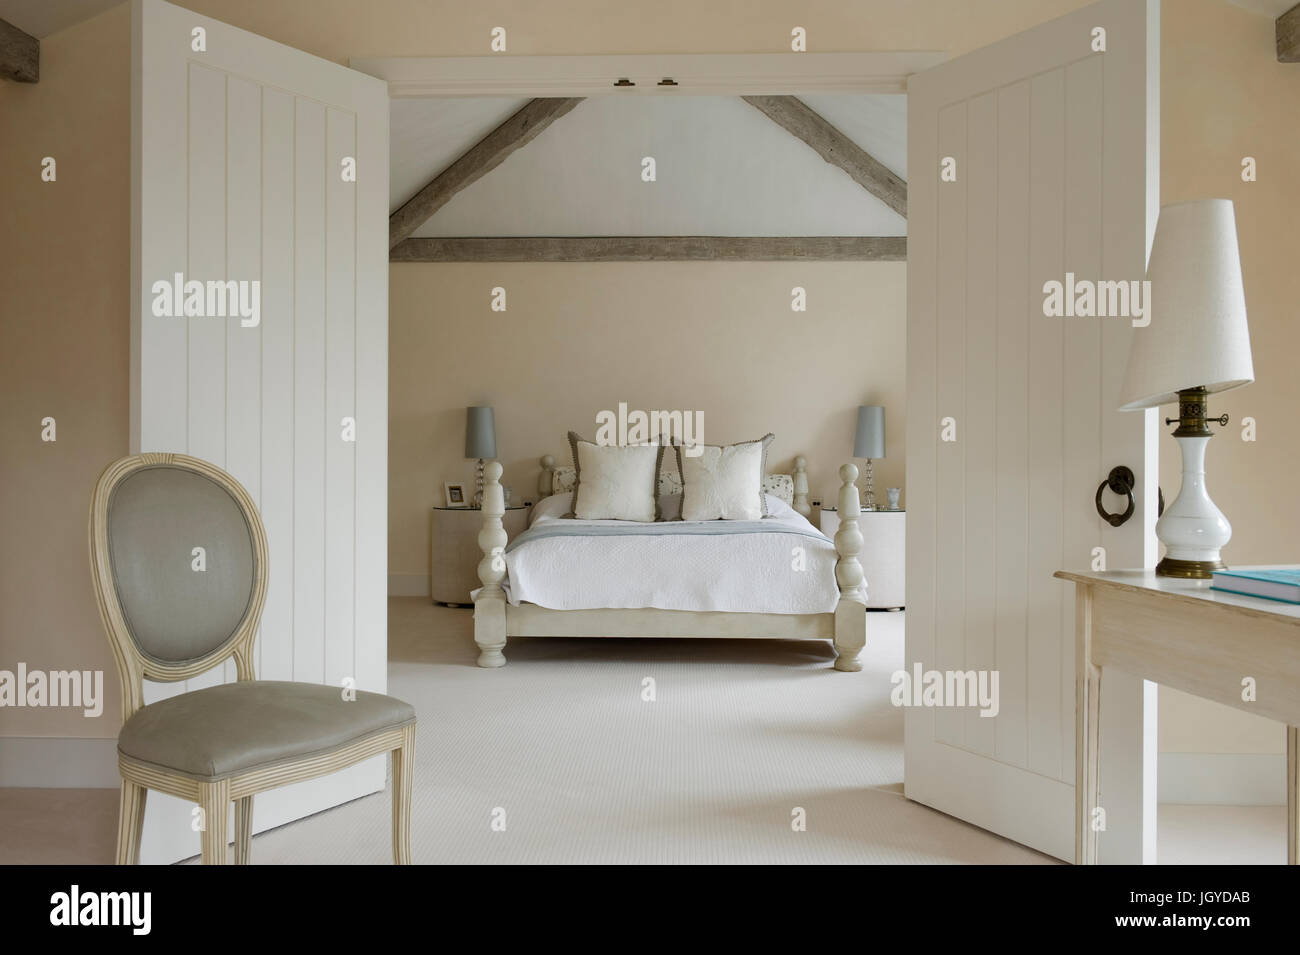 Camera Da Letto 4X4 double doors interior high resolution stock photography and